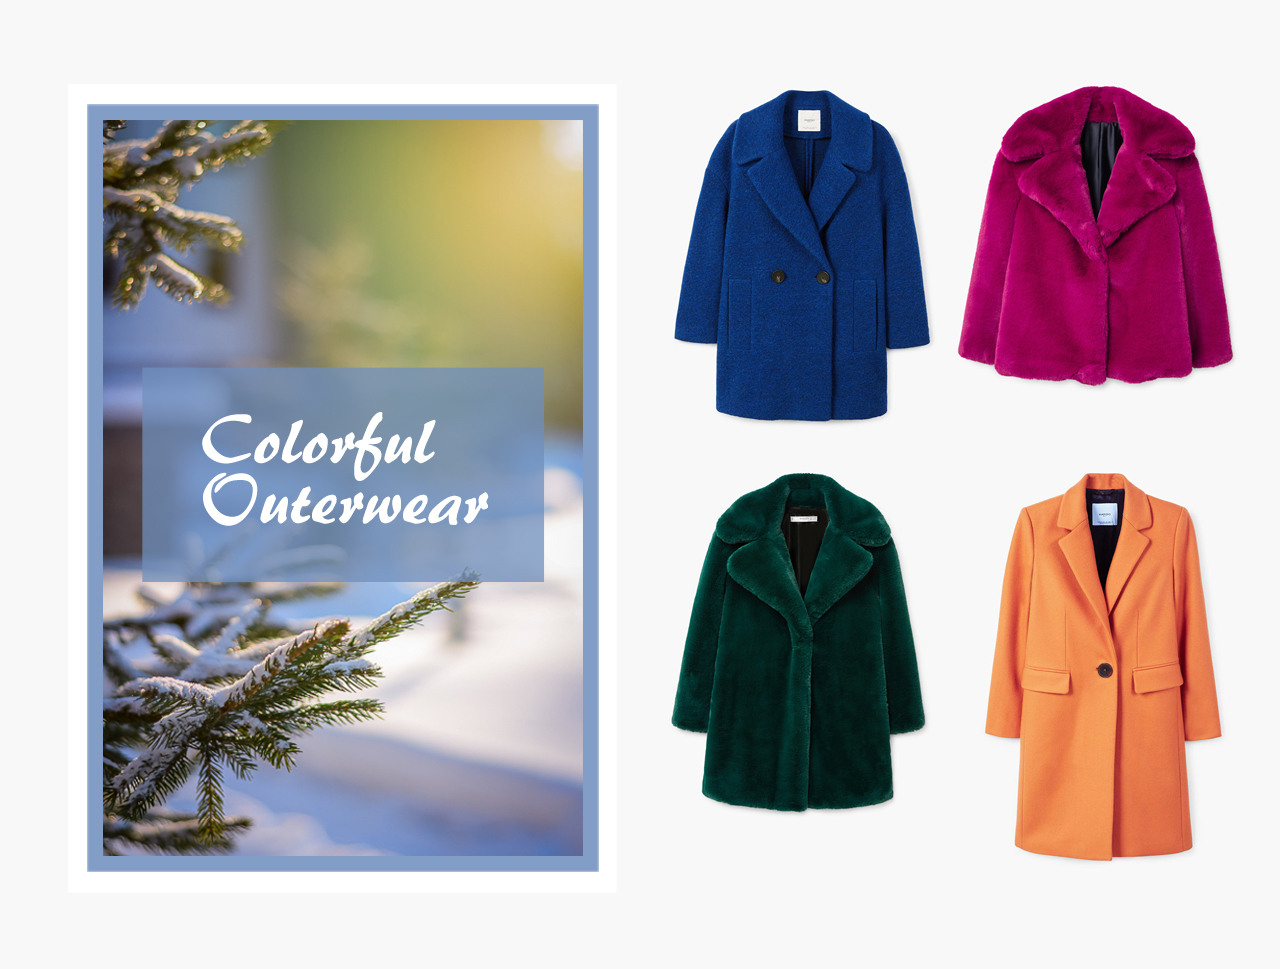 Colorful Outerwear 2018